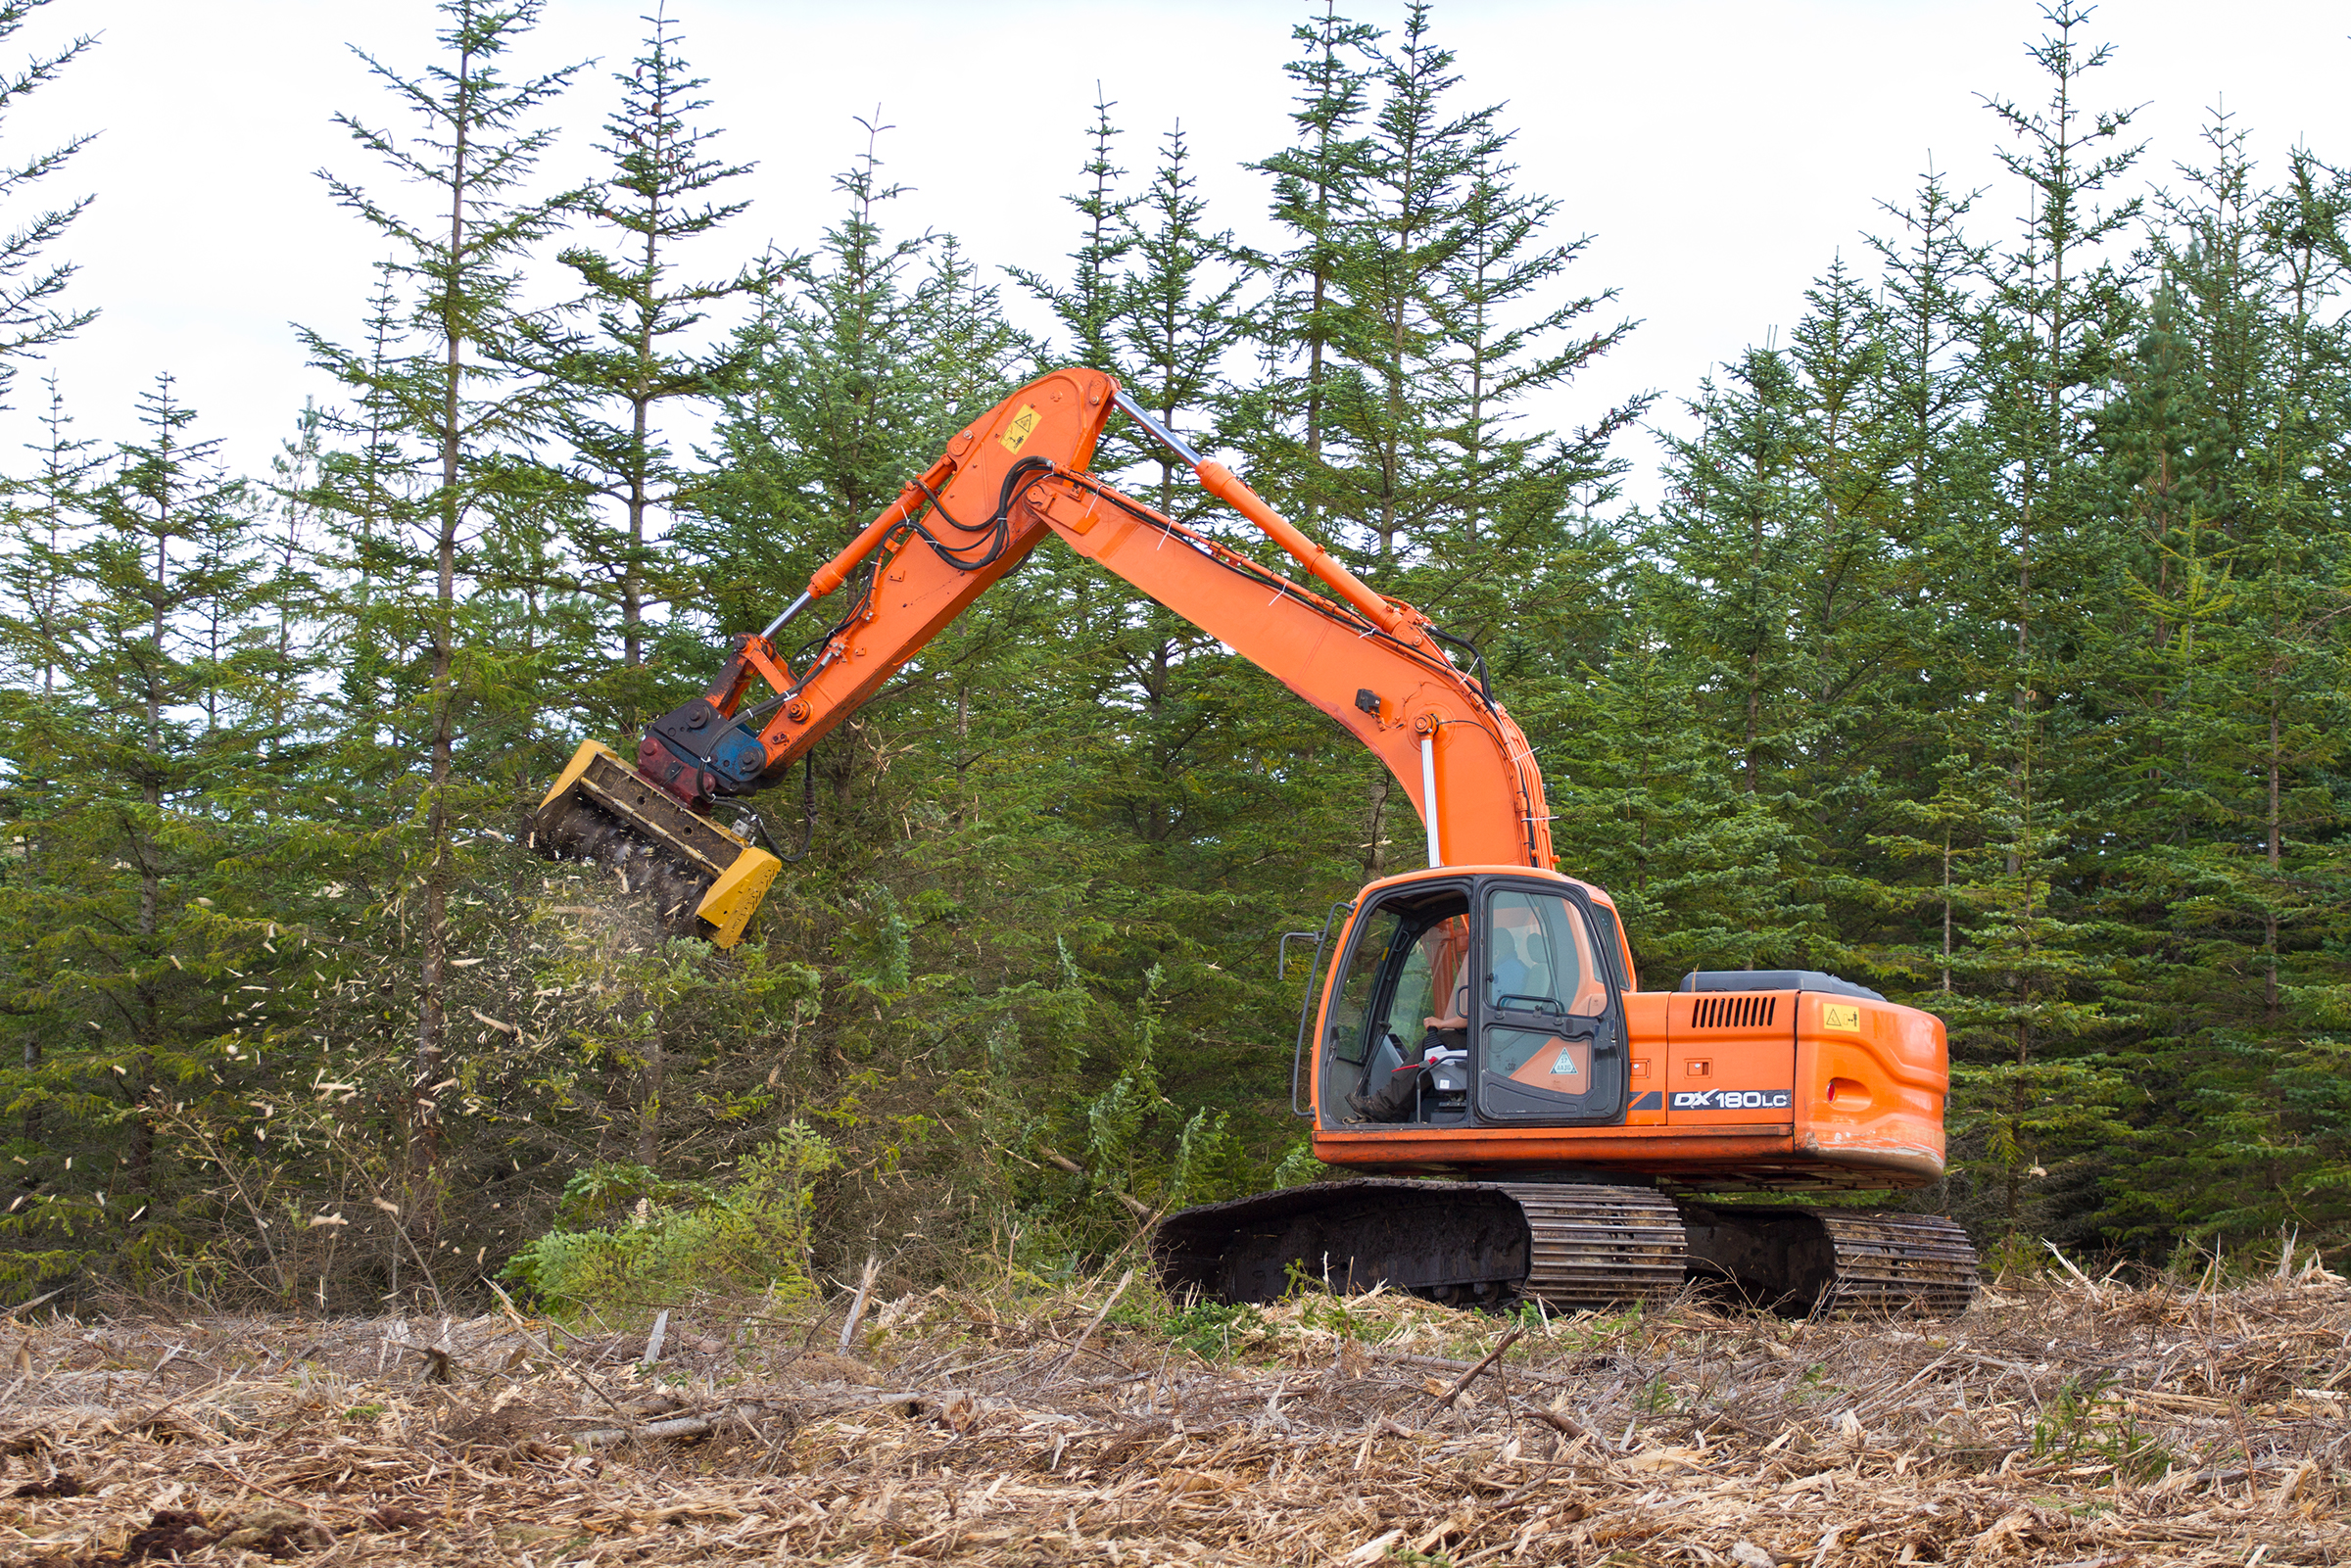 Land managers use heavy equipment to remove spruce and pine trees from the Forsinard Flows Reserve in an effort to restore the bog ecosystem that once thrived here.